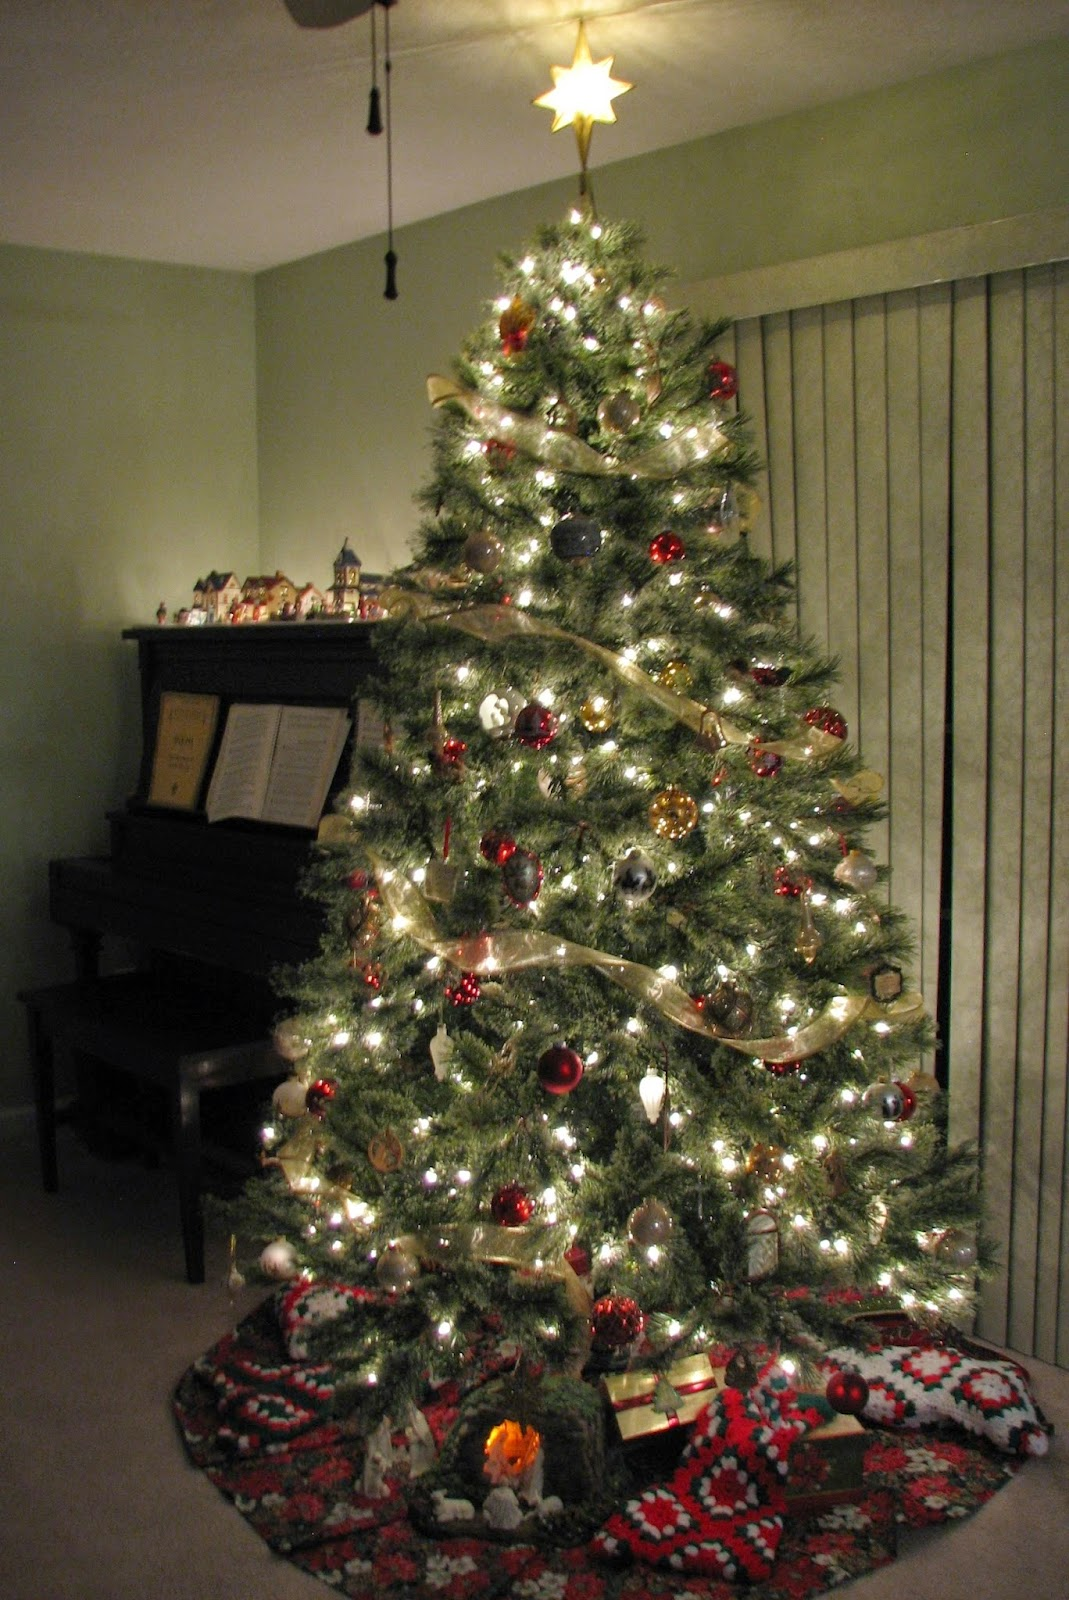 Jaclyn Smith 7.5' Pre-Lit Ridgedale Cashmere Spruce Tree from Kmart